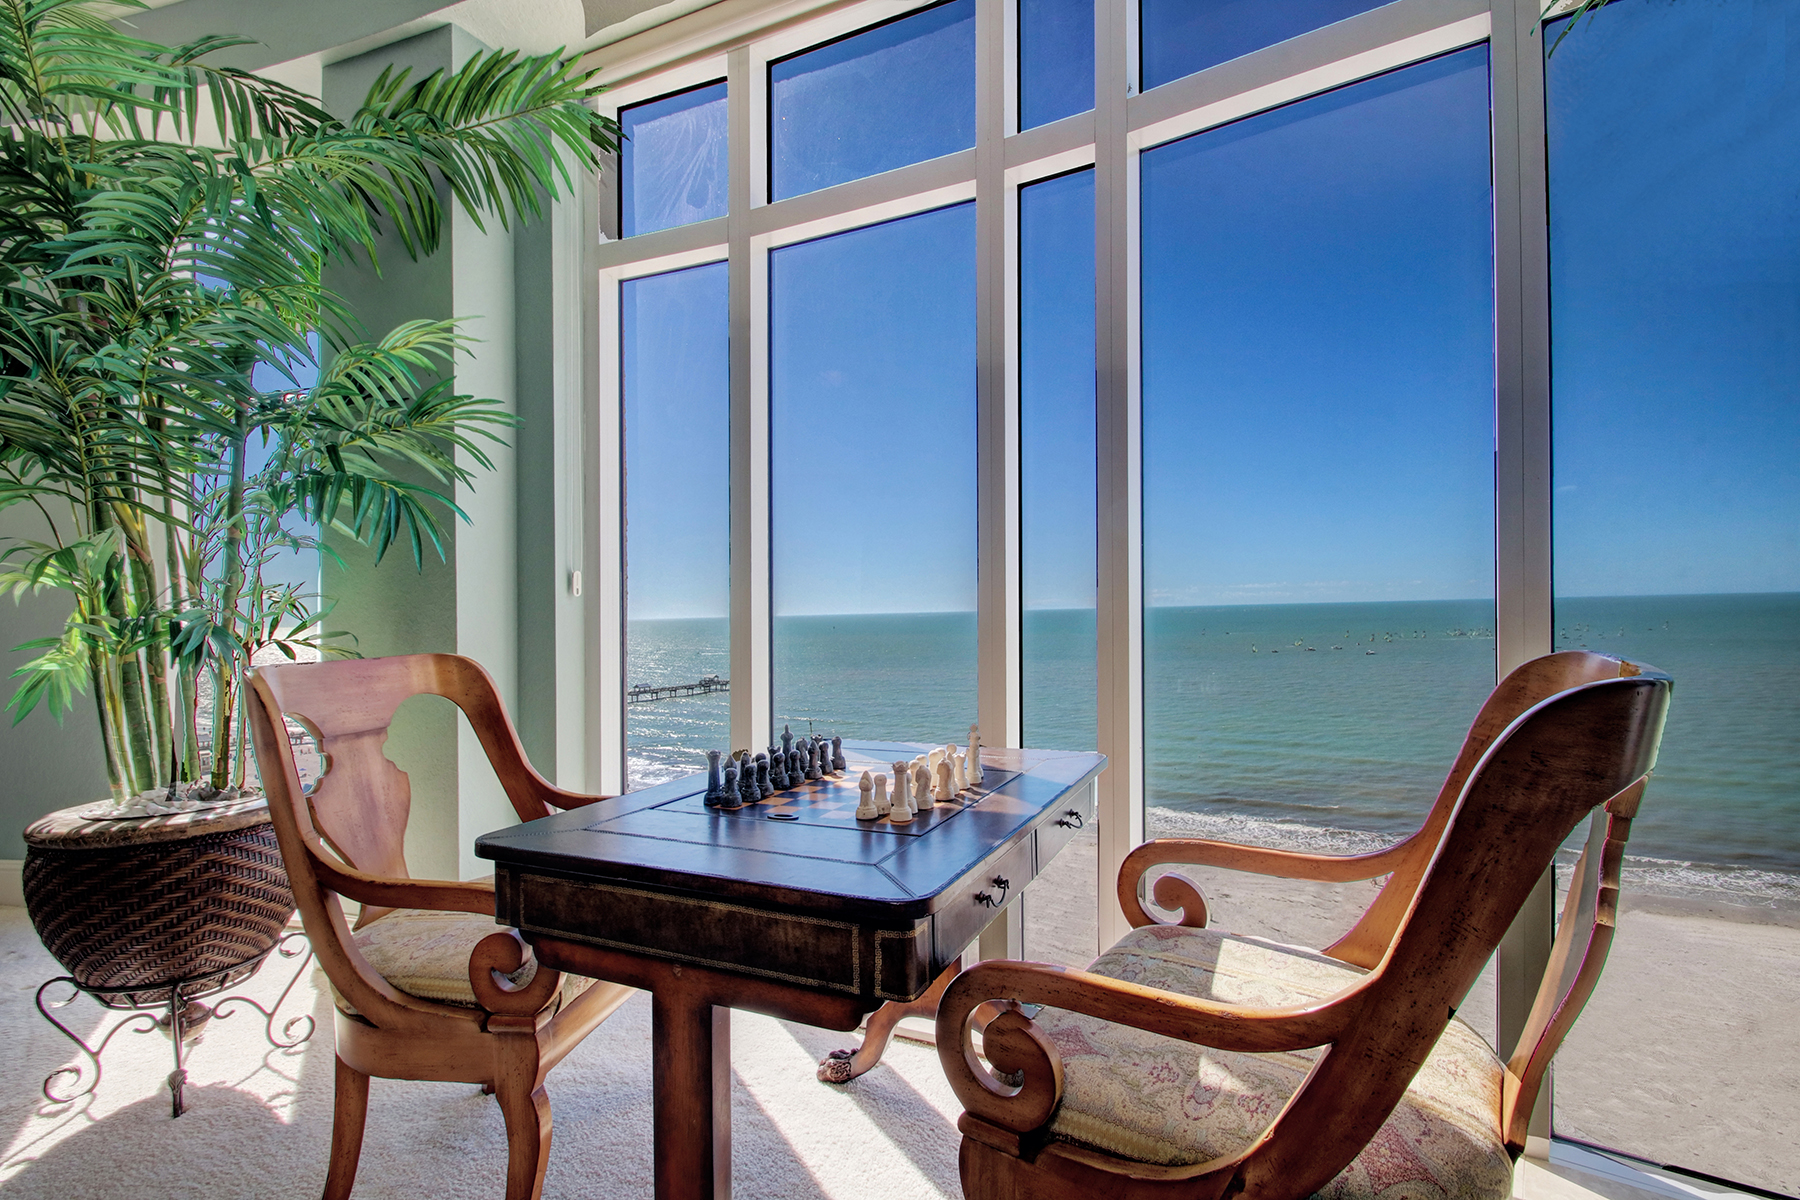 Condominium for Sale at CLEARWATER BEACH 10 Papaya St 1501 Clearwater Beach, Florida, 33767 United States